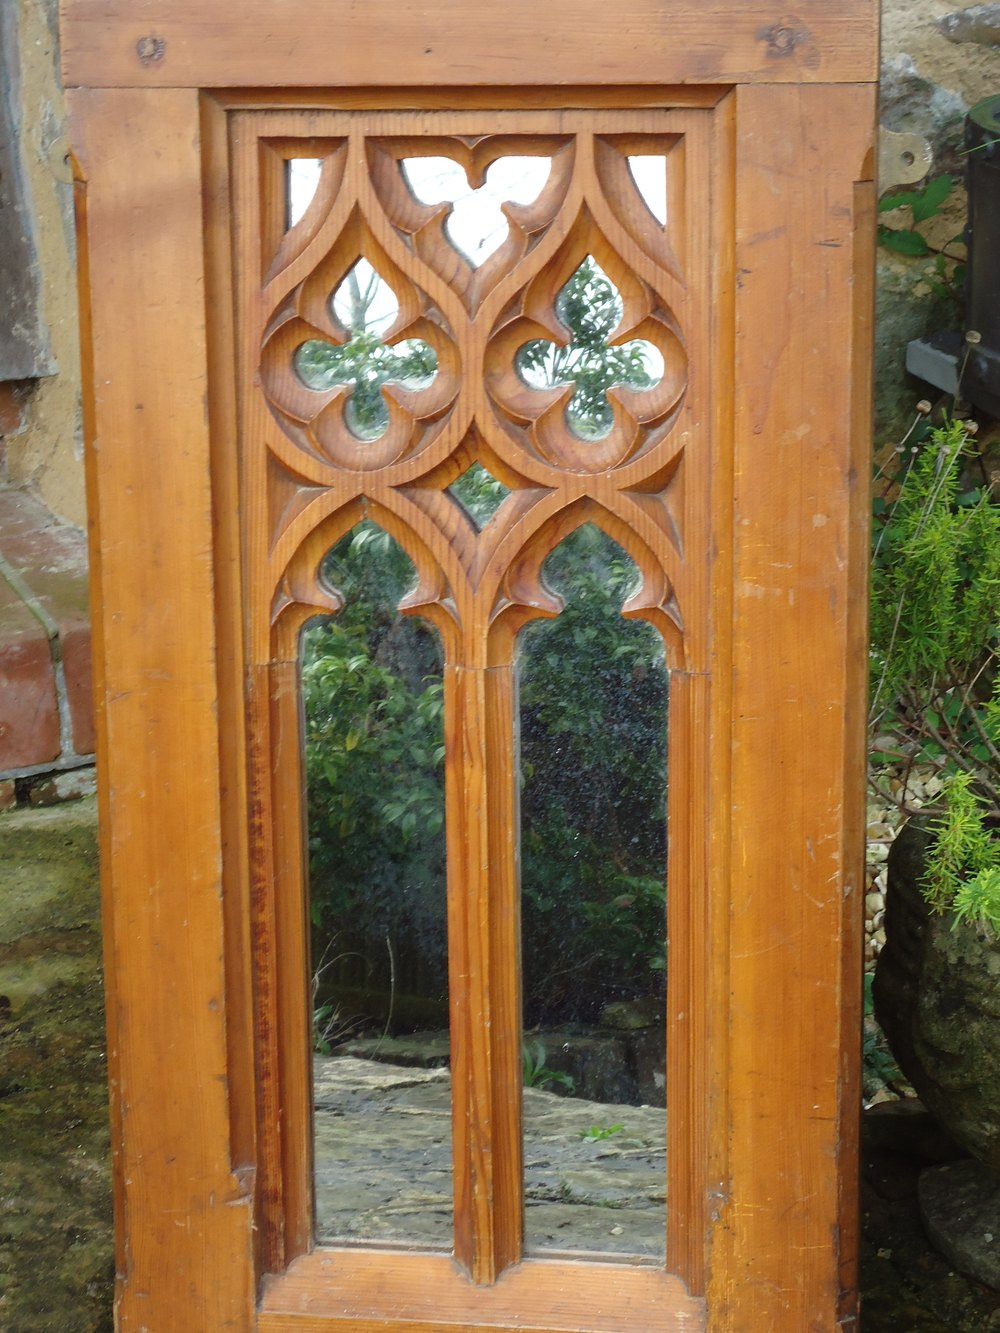 Arts and crafts mirrors - Arts Crafts Gothic Pine Mirror Arts And Crafts Mirrors